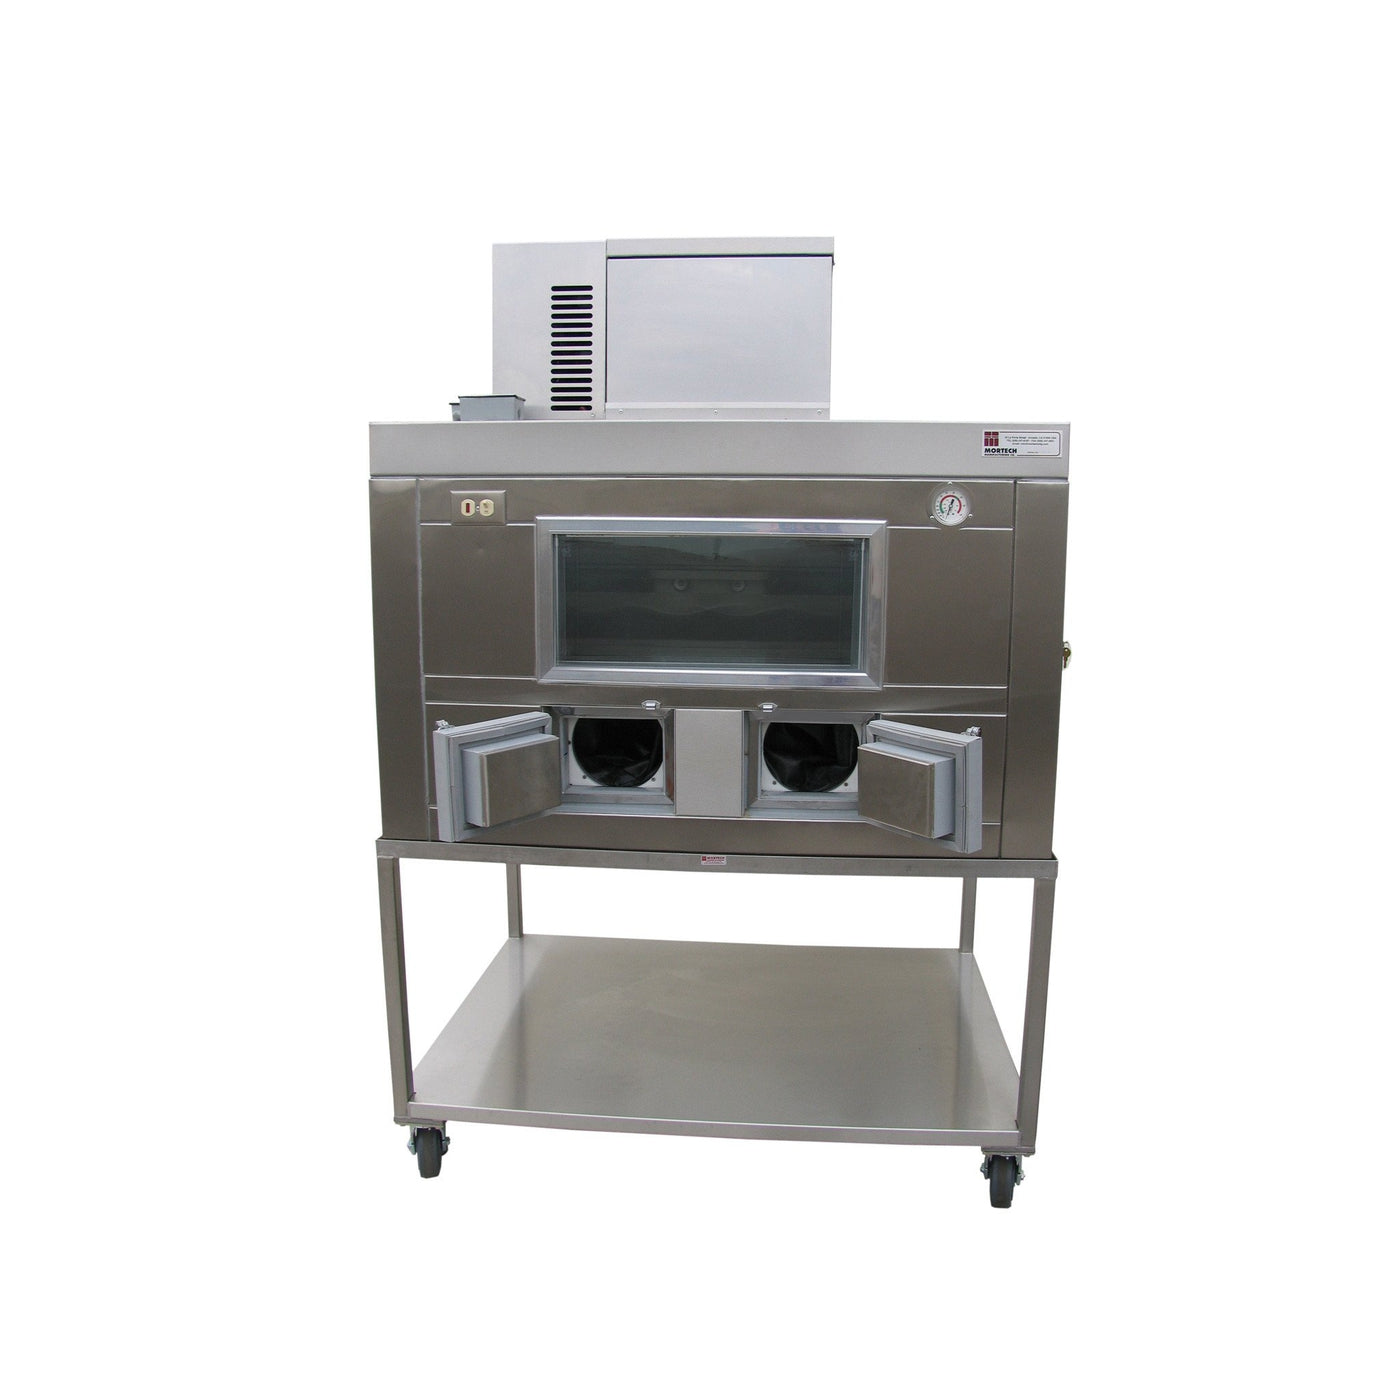 Freezer Workstation-Anatomy Dissection Tables-Mortech Manufacturing Company Inc. Quality Stainless Steel Autopsy, Morgue, Funeral Home, Necropsy, Veterinary / Anatomy, Dissection Equipment and Accessories